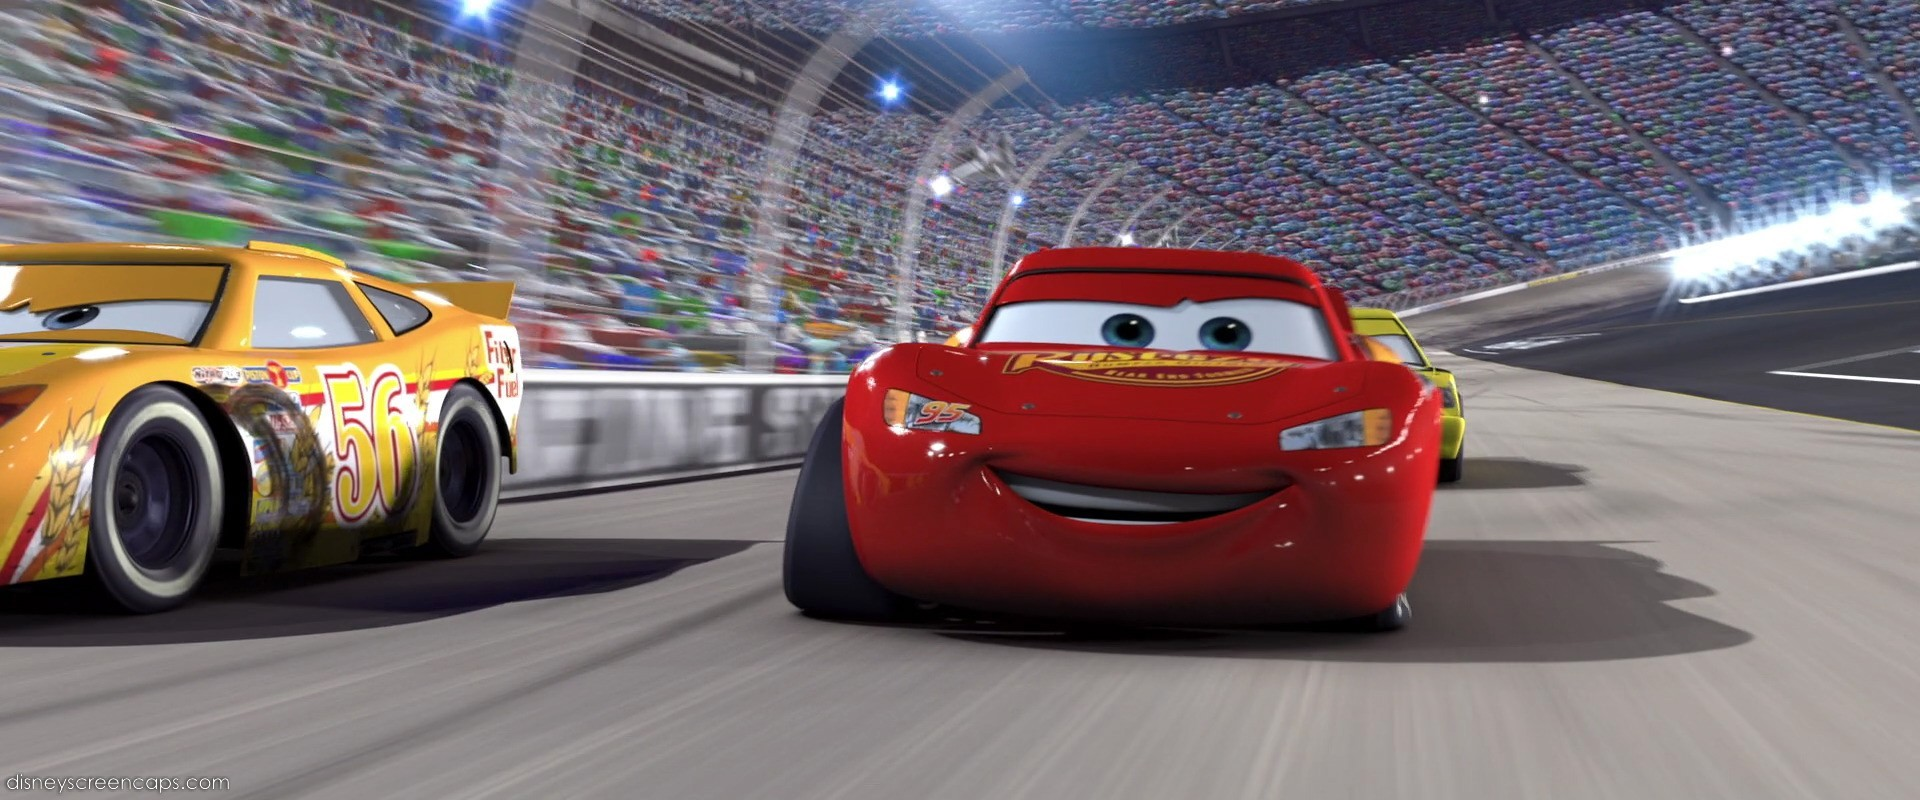 Lightning McQueen images Lightning McQueen HD wallpaper and background photos & Lightning McQueen images Lightning McQueen HD wallpaper and ...